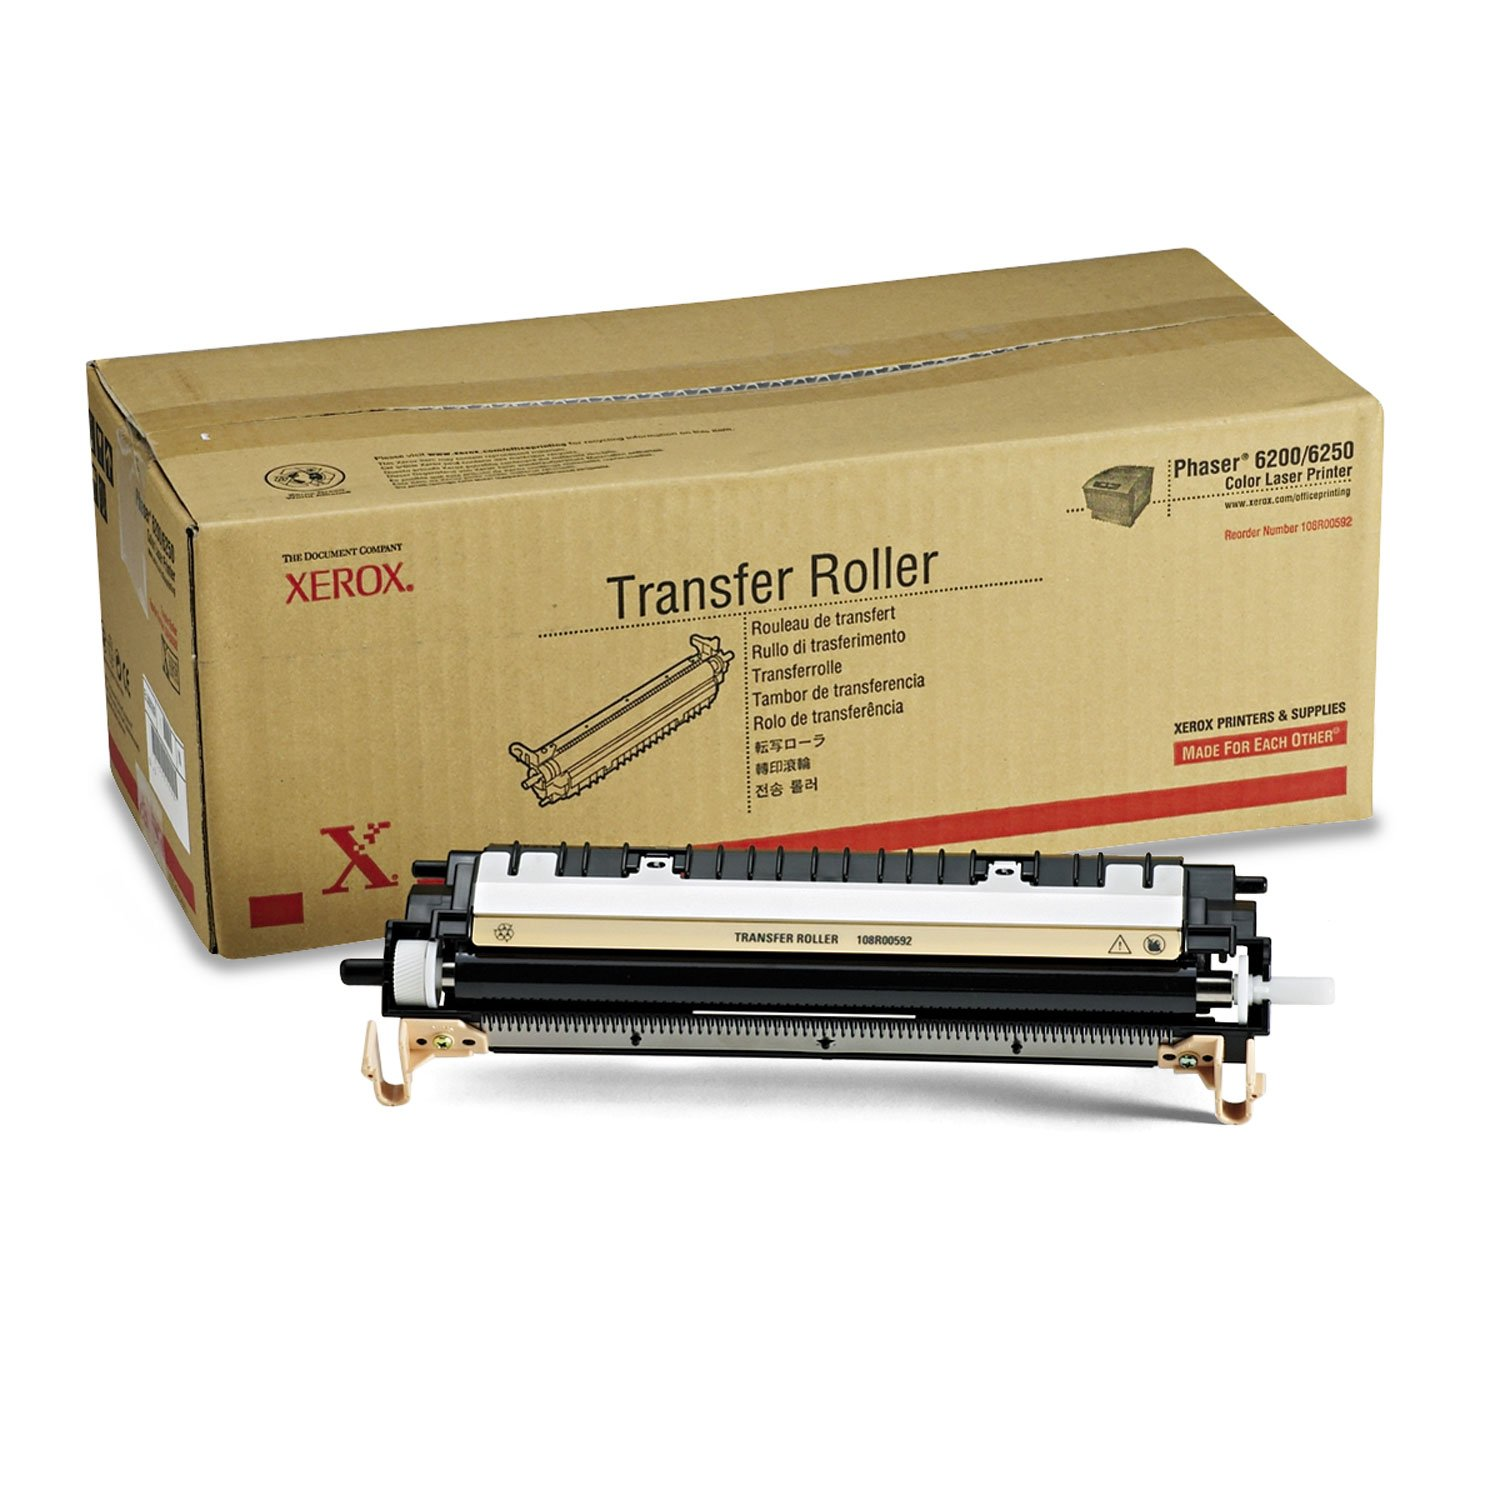 XER108R00592 Xerox Transfer Roller for Phaser 6200 and 6250 color Printer